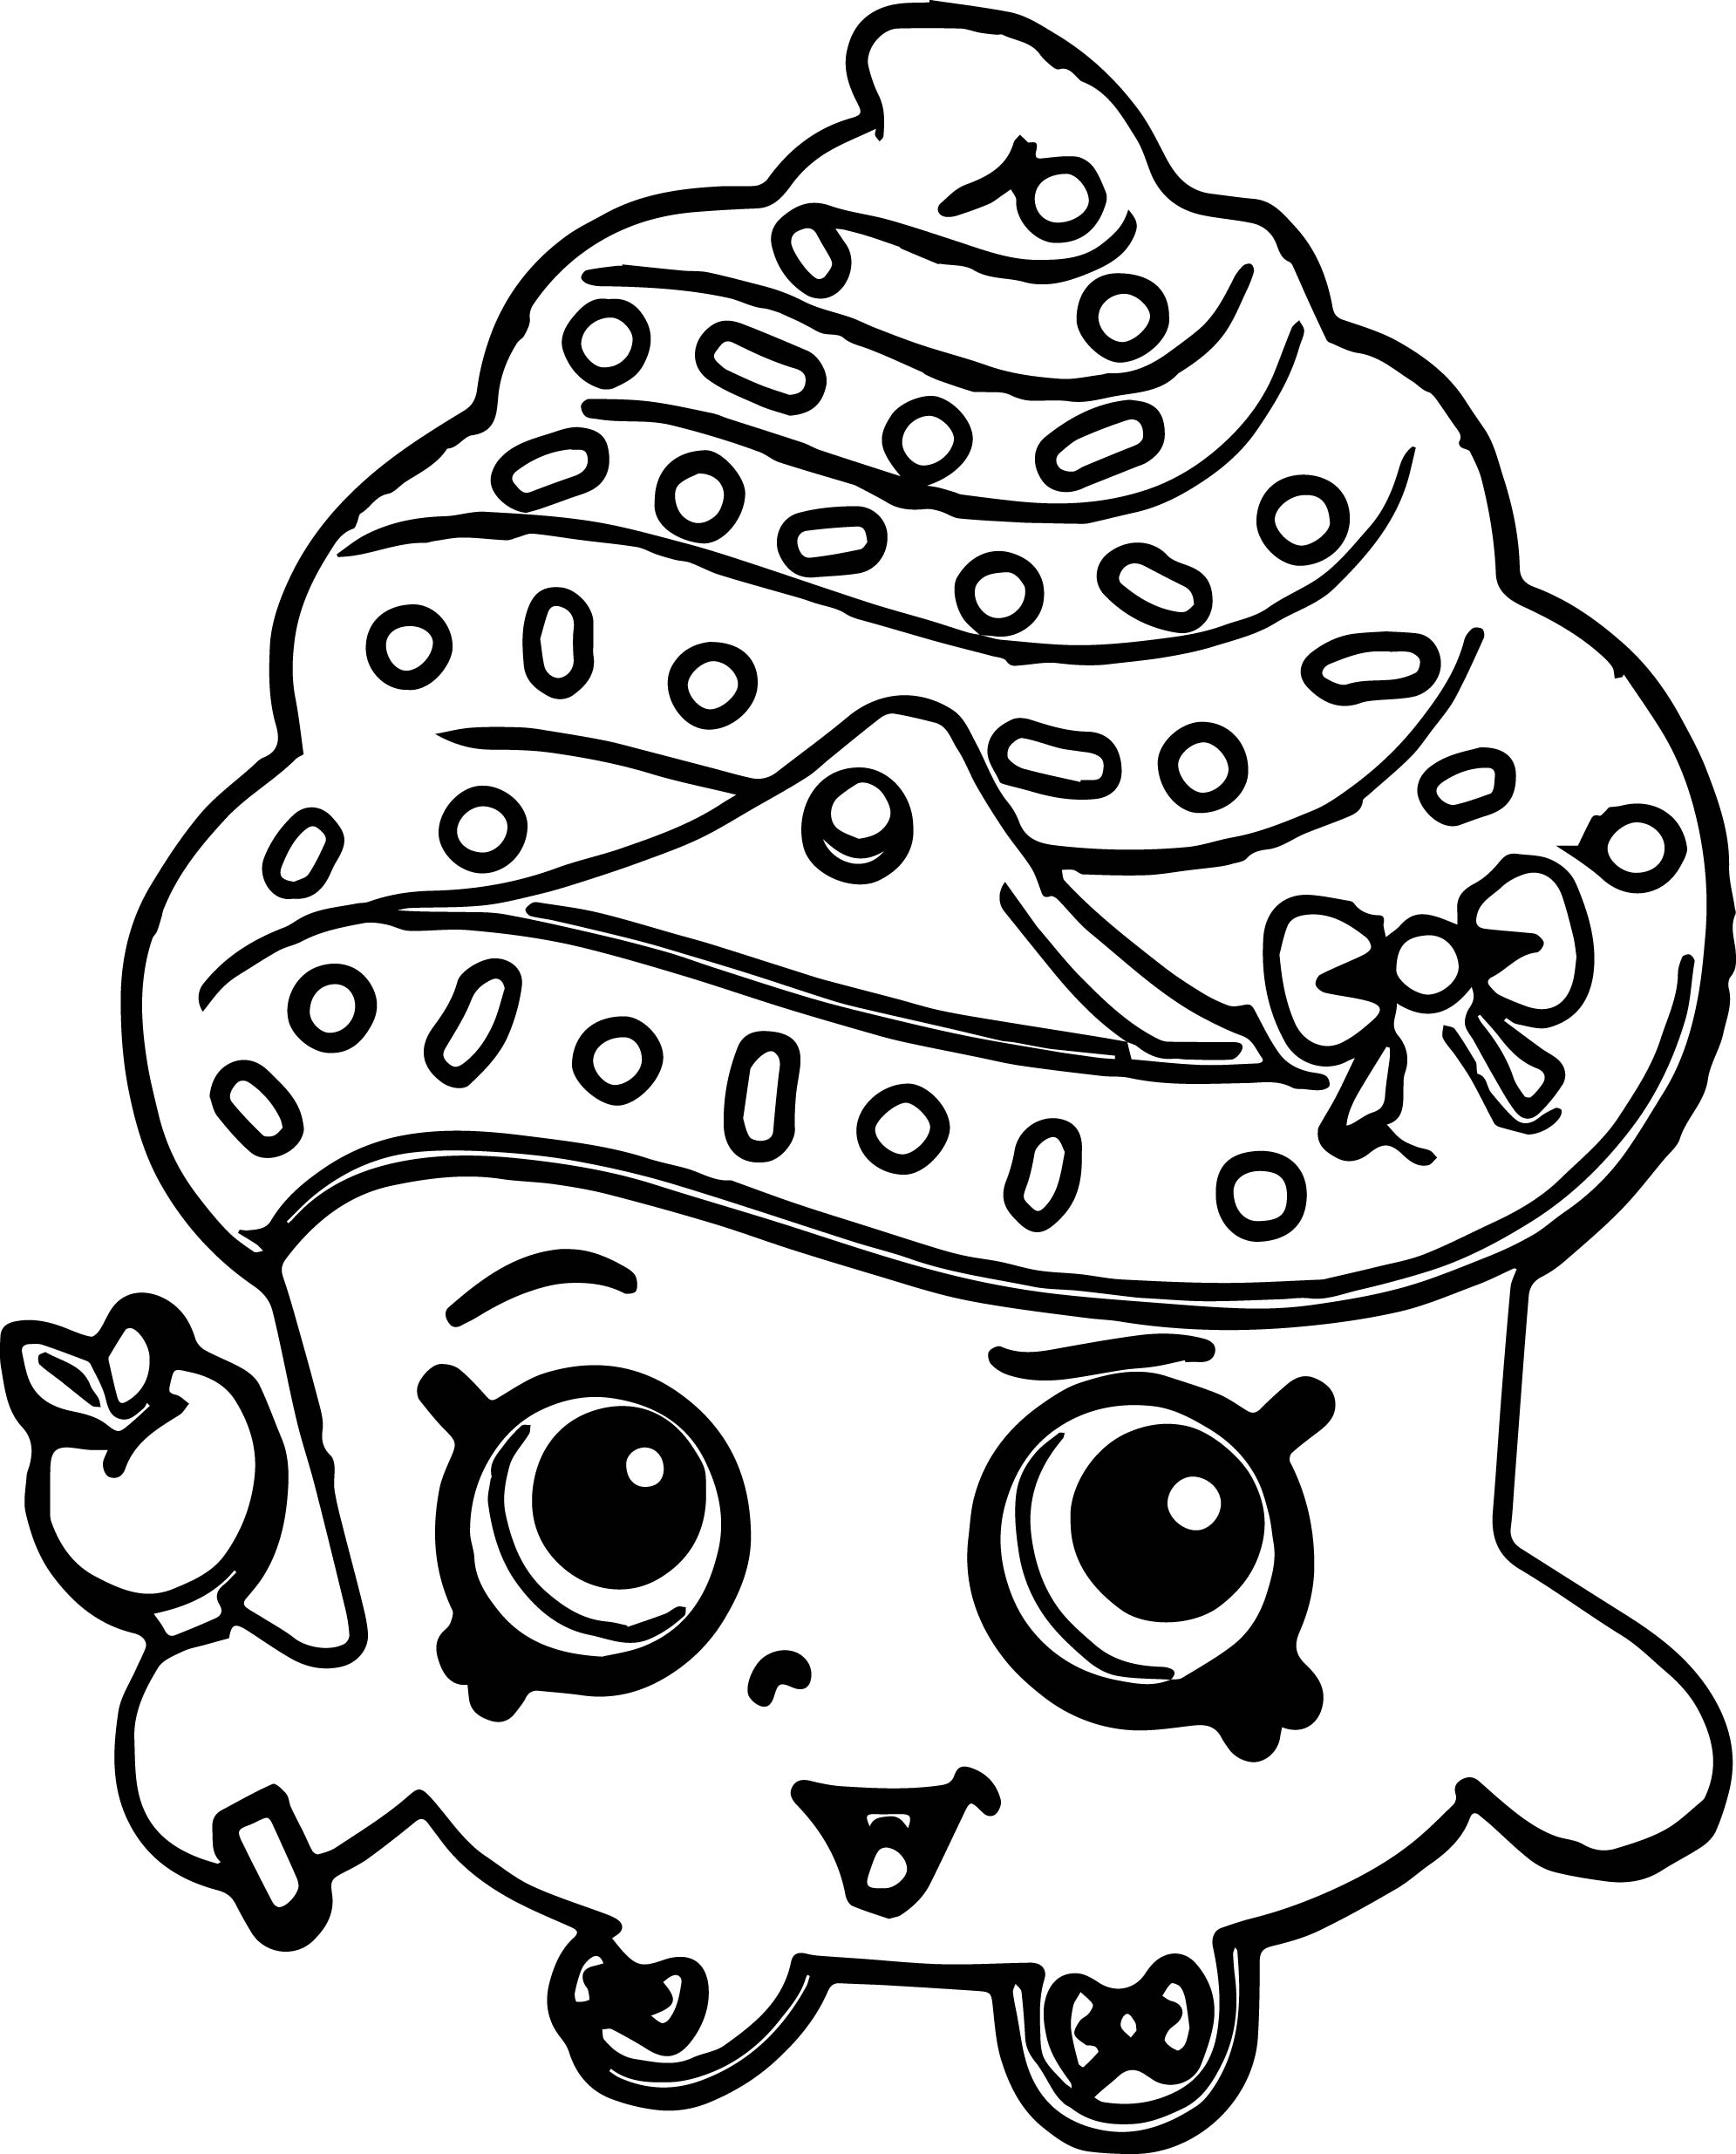 Shopkins Cute Cupcake Coloring Page